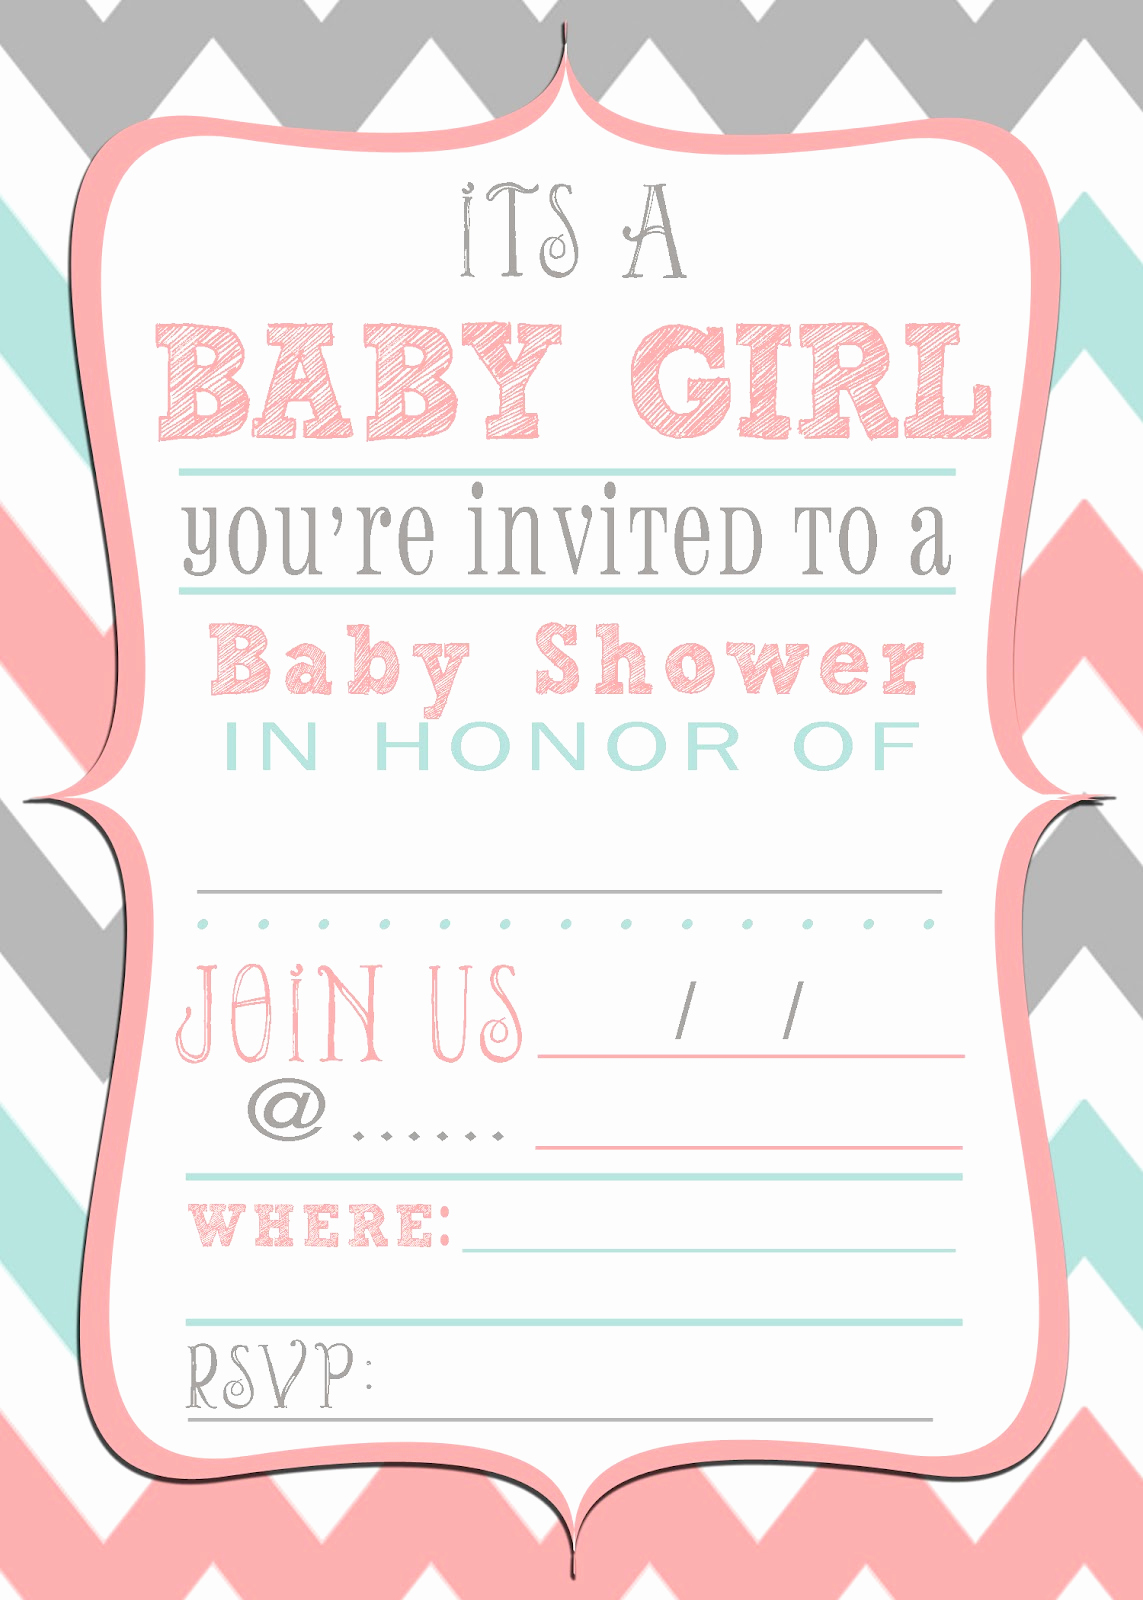 Baby Shower Invitation for Girls Lovely Mrs This and that Baby Shower Banner Free Downloads